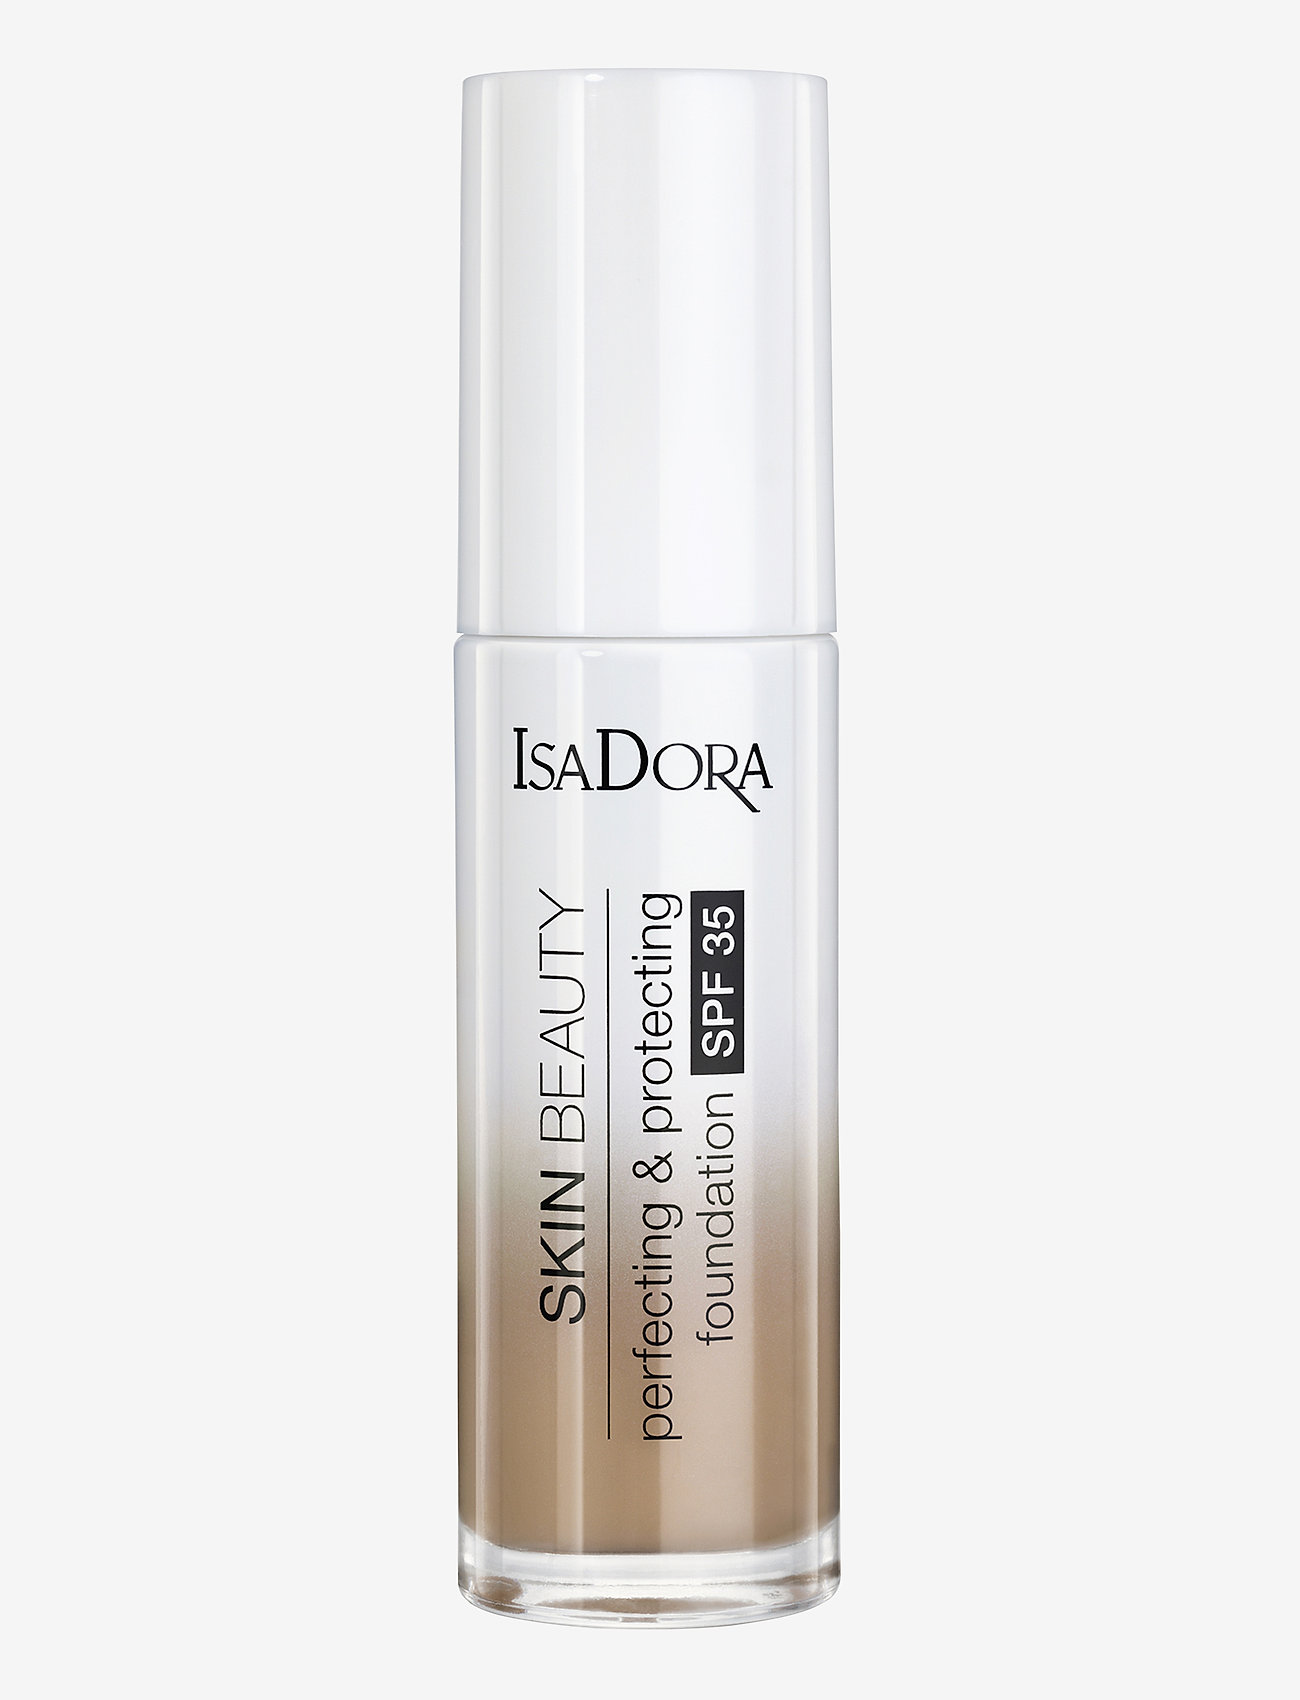 Isadora Skin Beauty Perfecting & Protecting Foundation Spf 35 Almond (Almond) - 26.99 € a8CjvYY7